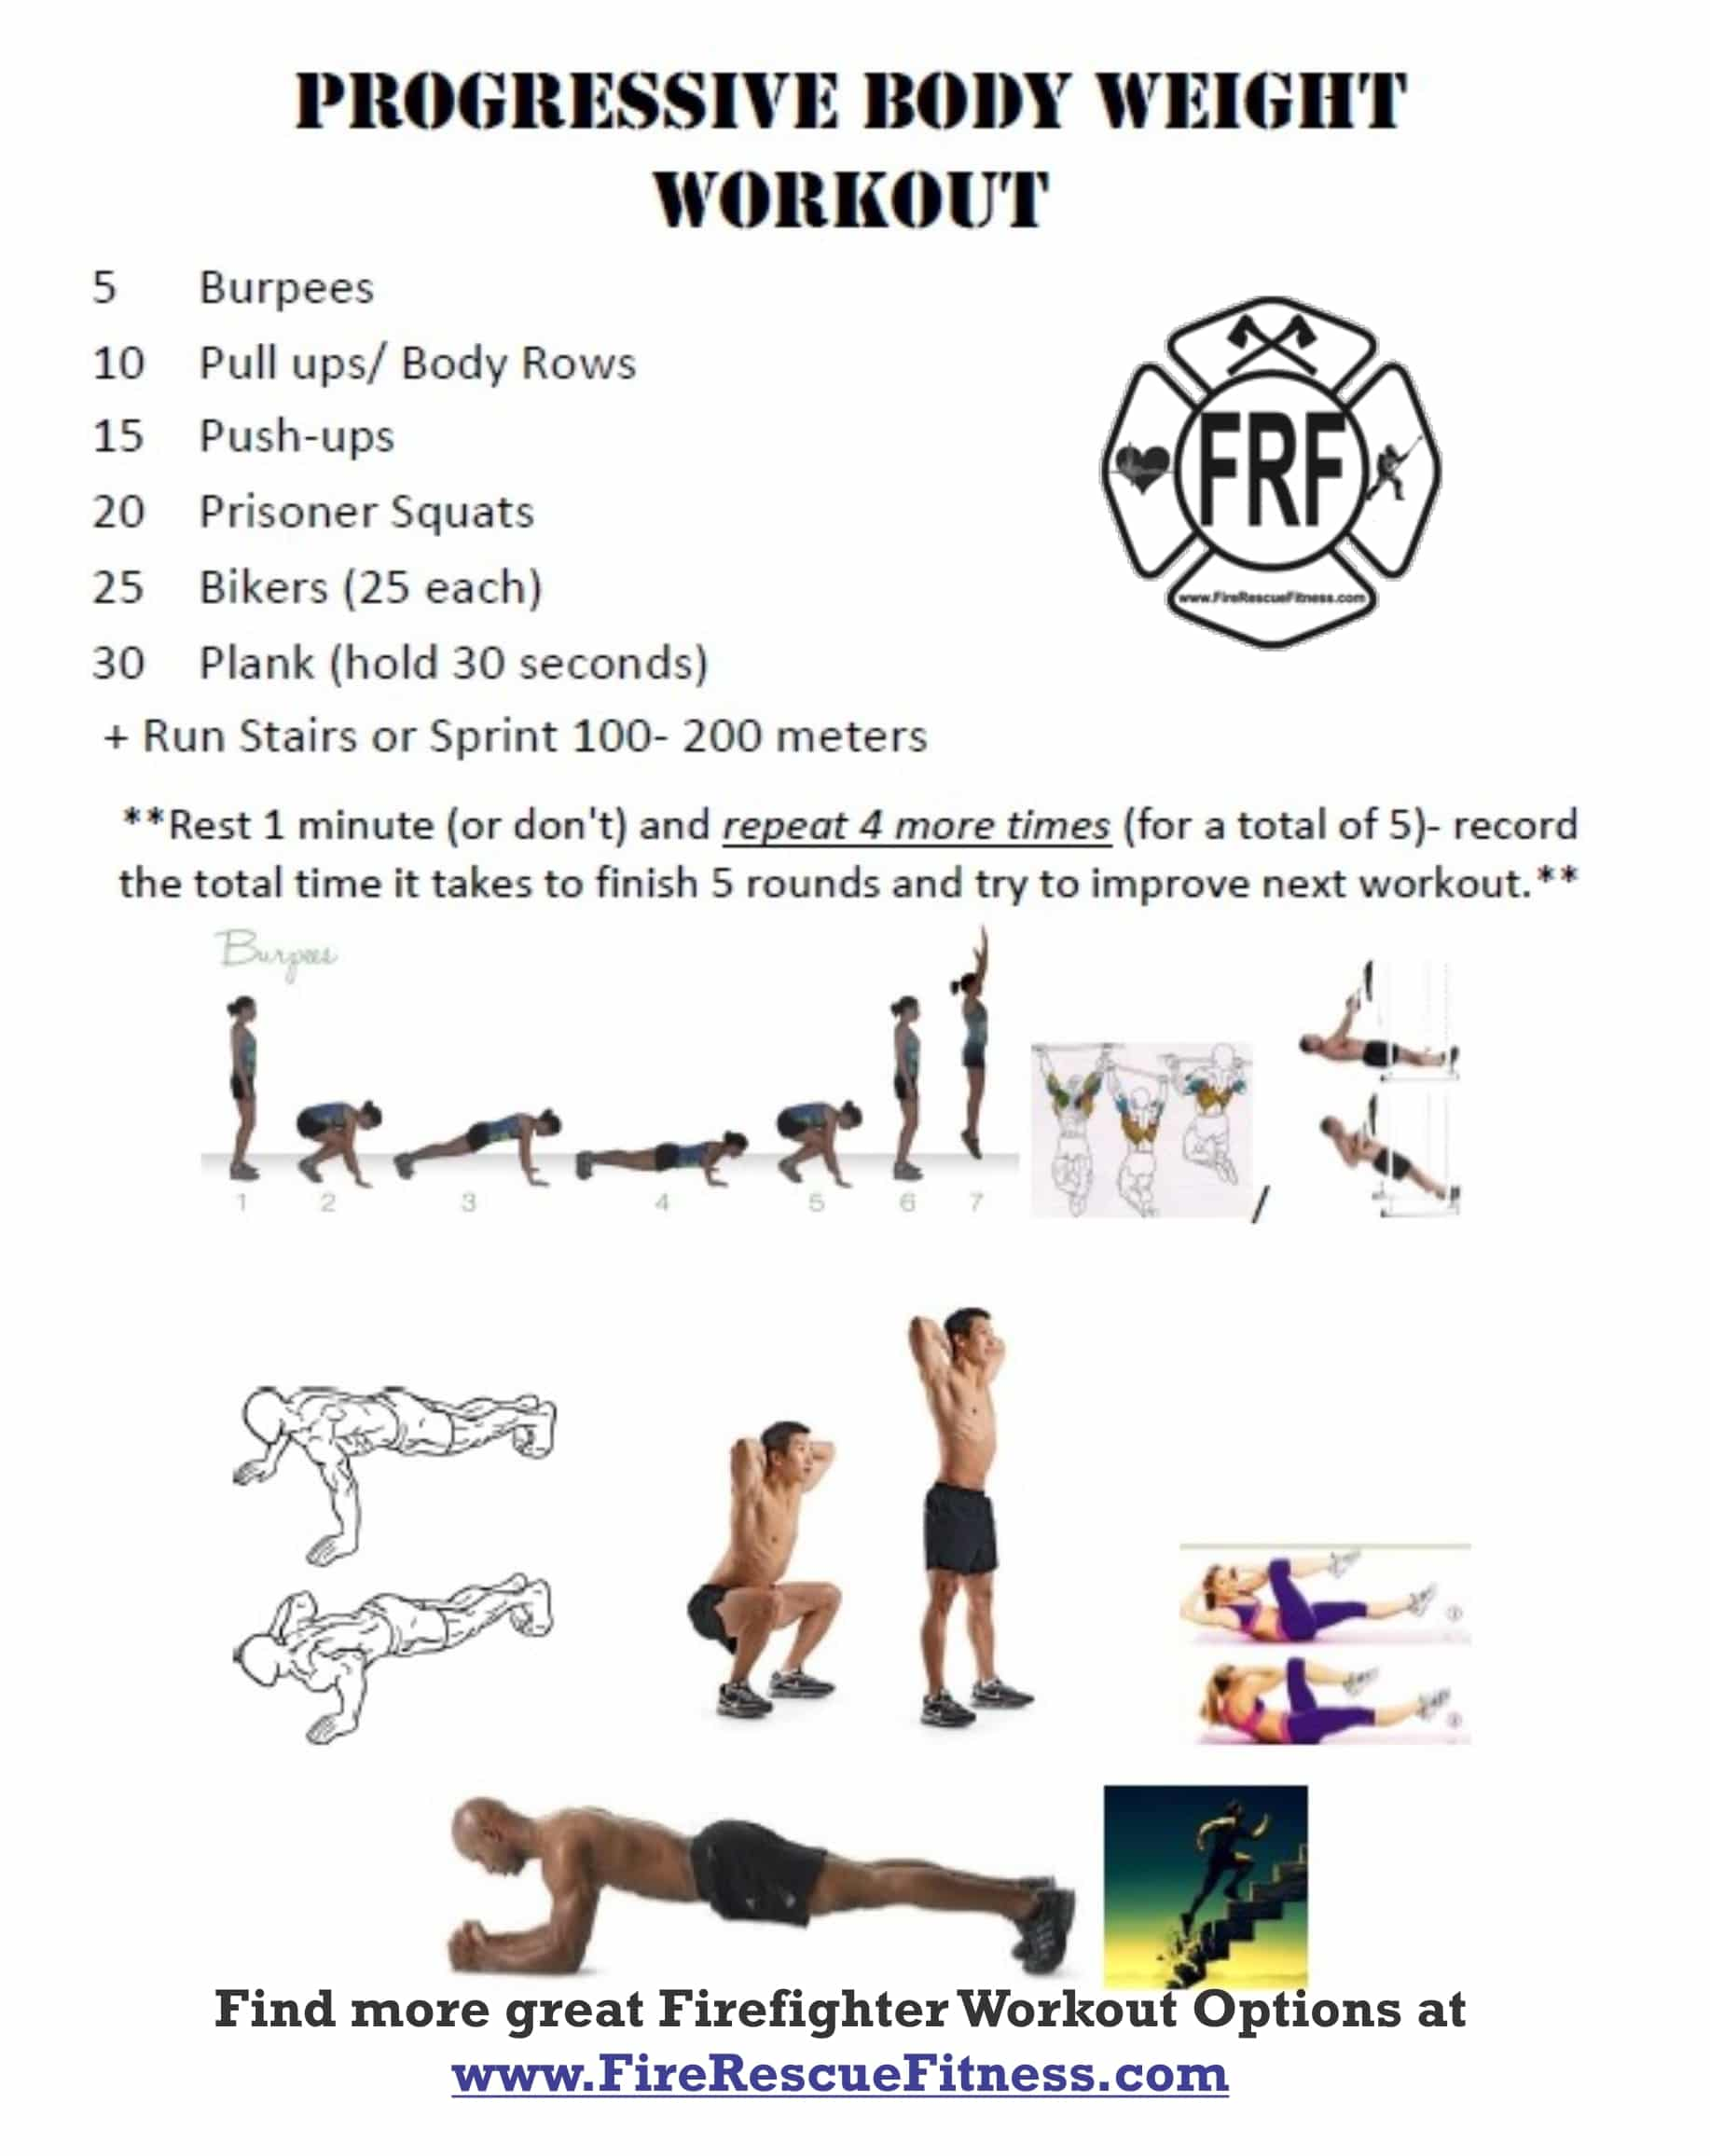 Looking For More Great Challenge Workouts Check Out The Ultimate Fire Rescue Athlete Workout Program A Comprehensive 12 Week Firefighter